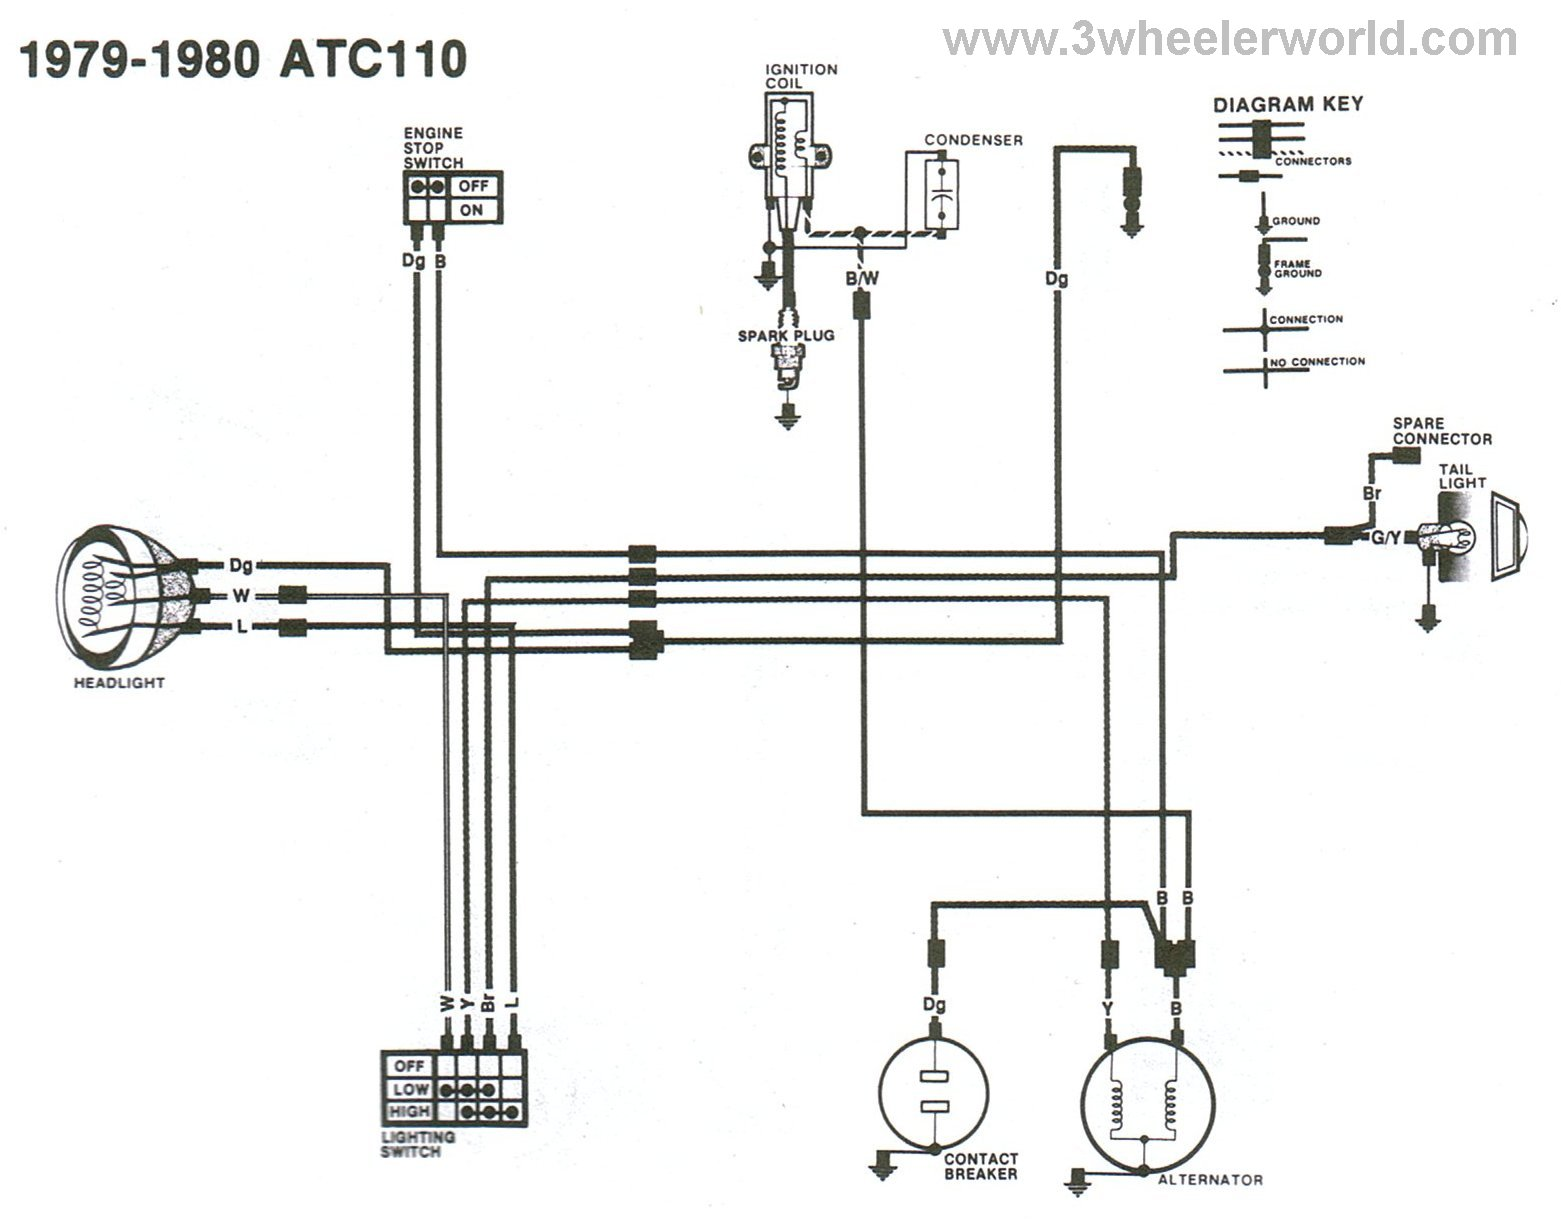 3wheeler World Honda Atc Wiring Diagrams Helix Diagram Article Preview